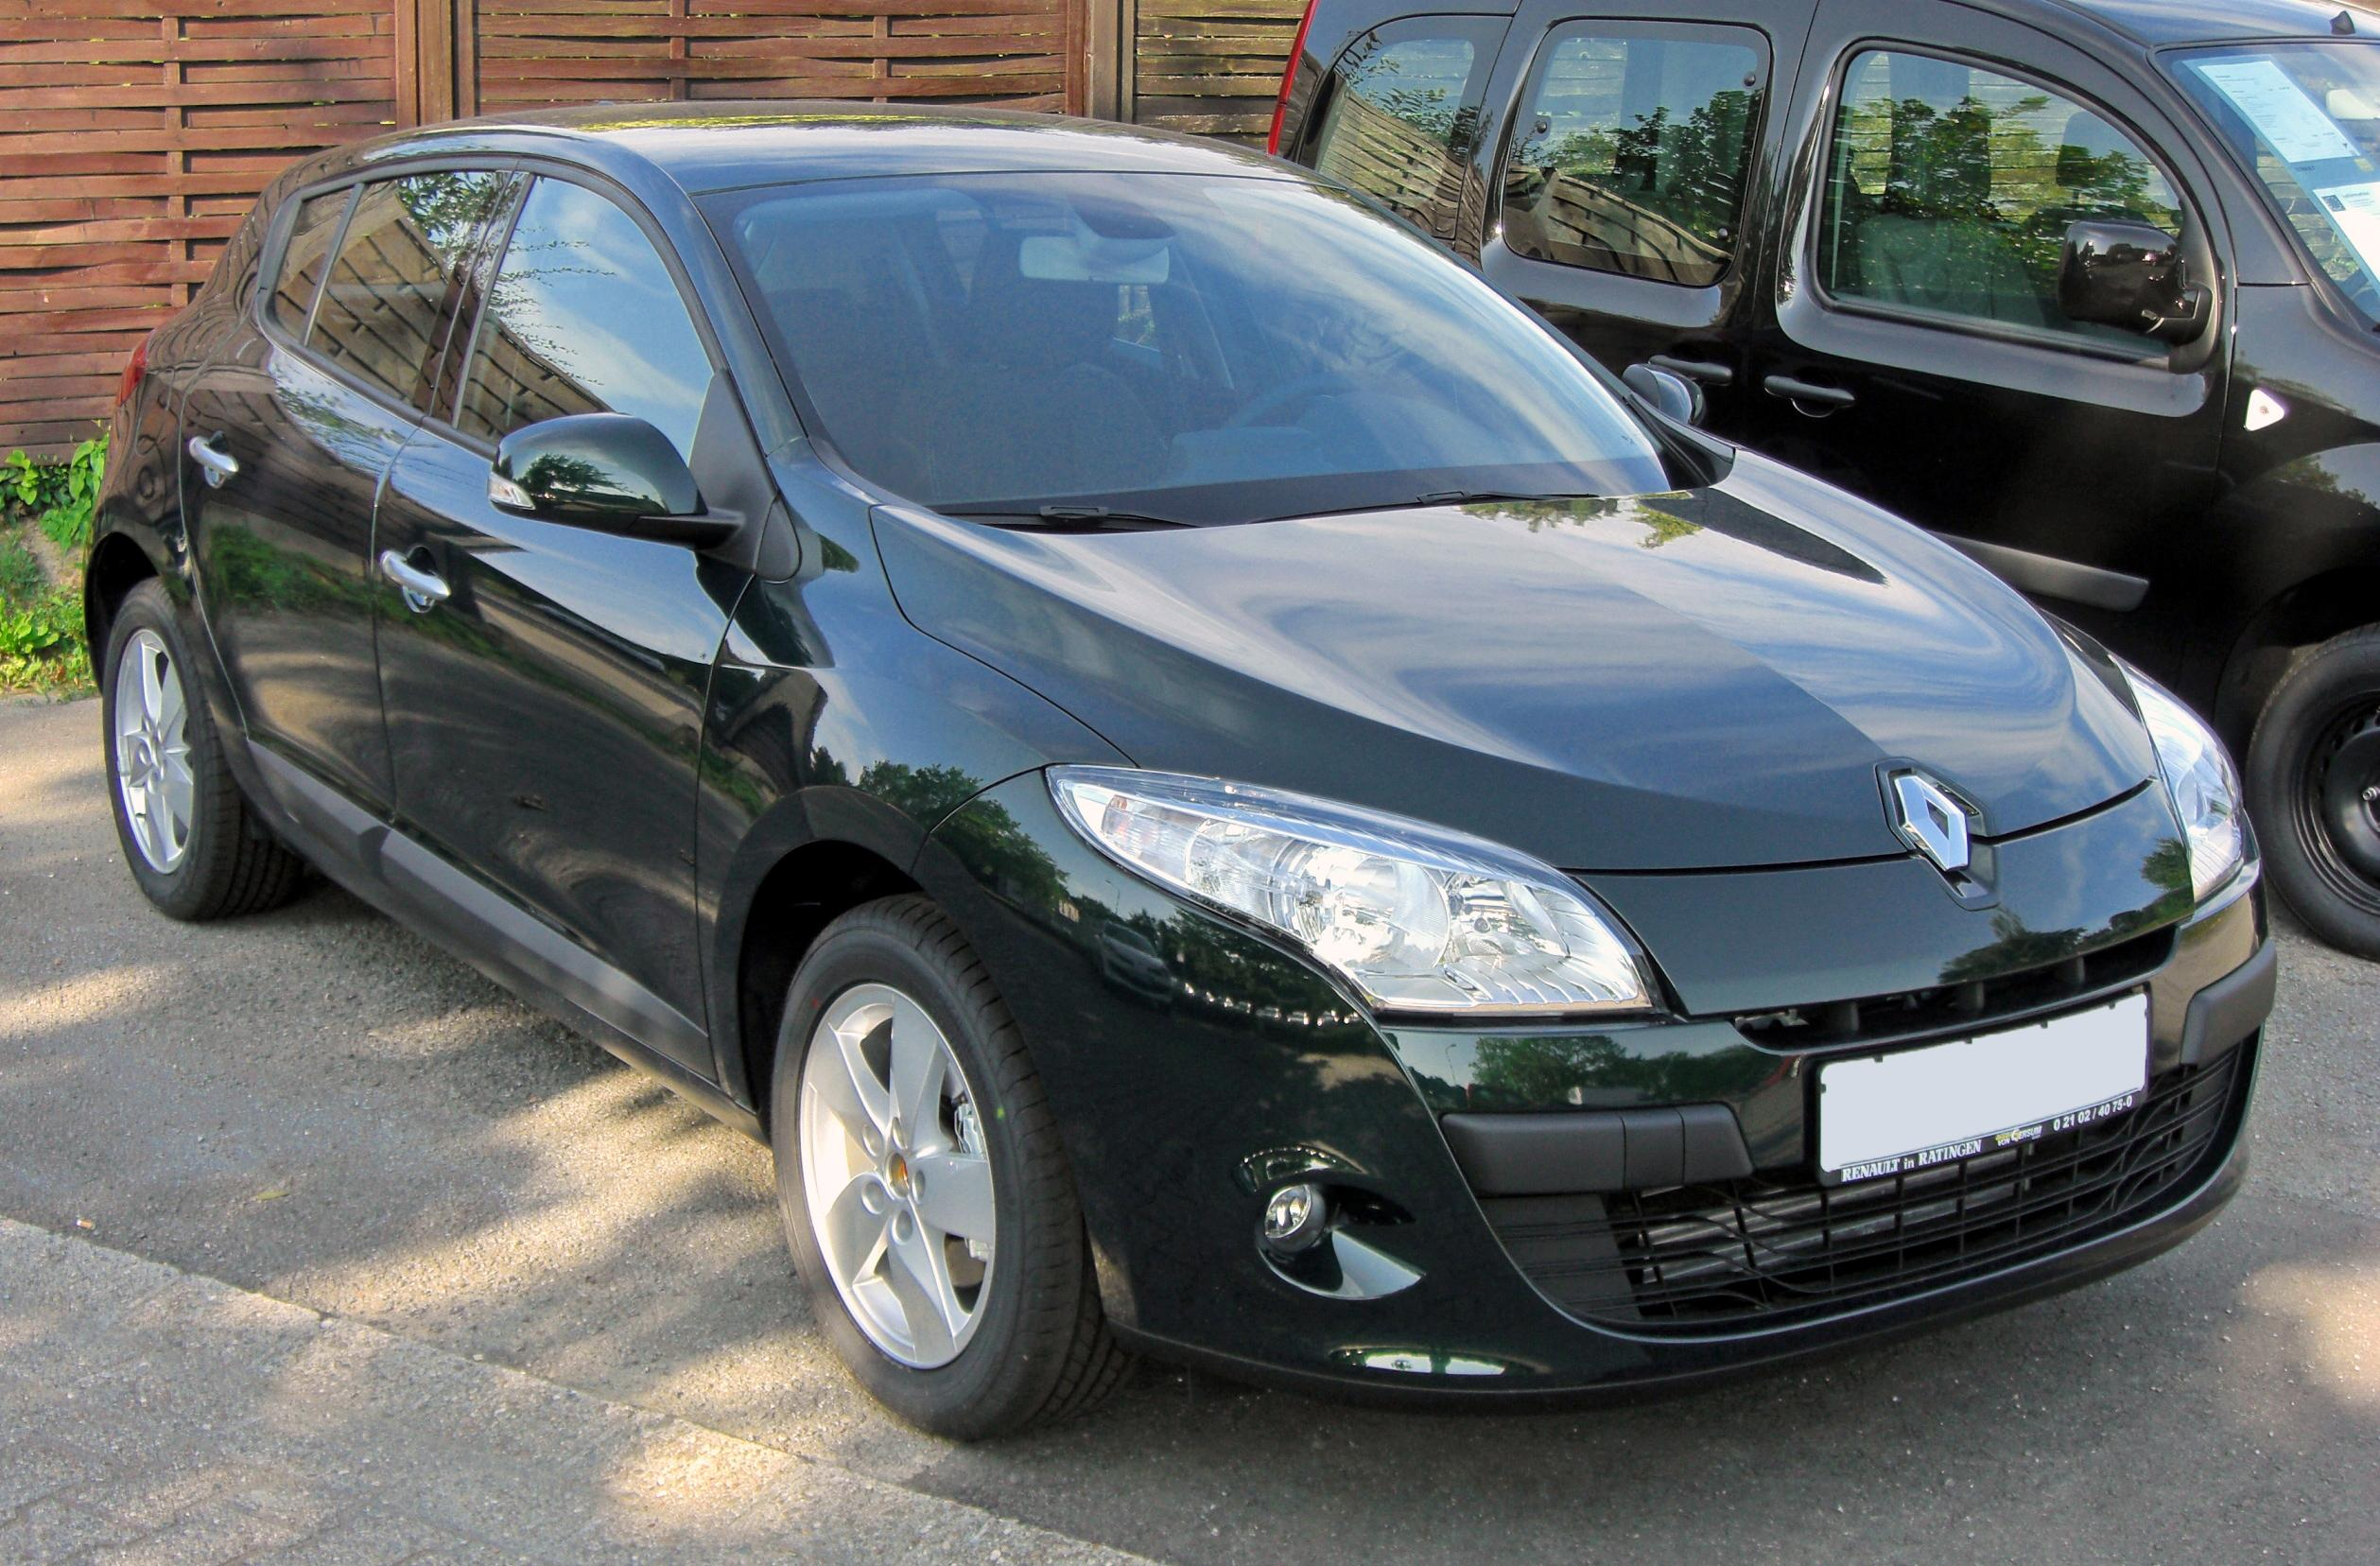 renault megane provocare x4 forum 4tuning. Black Bedroom Furniture Sets. Home Design Ideas